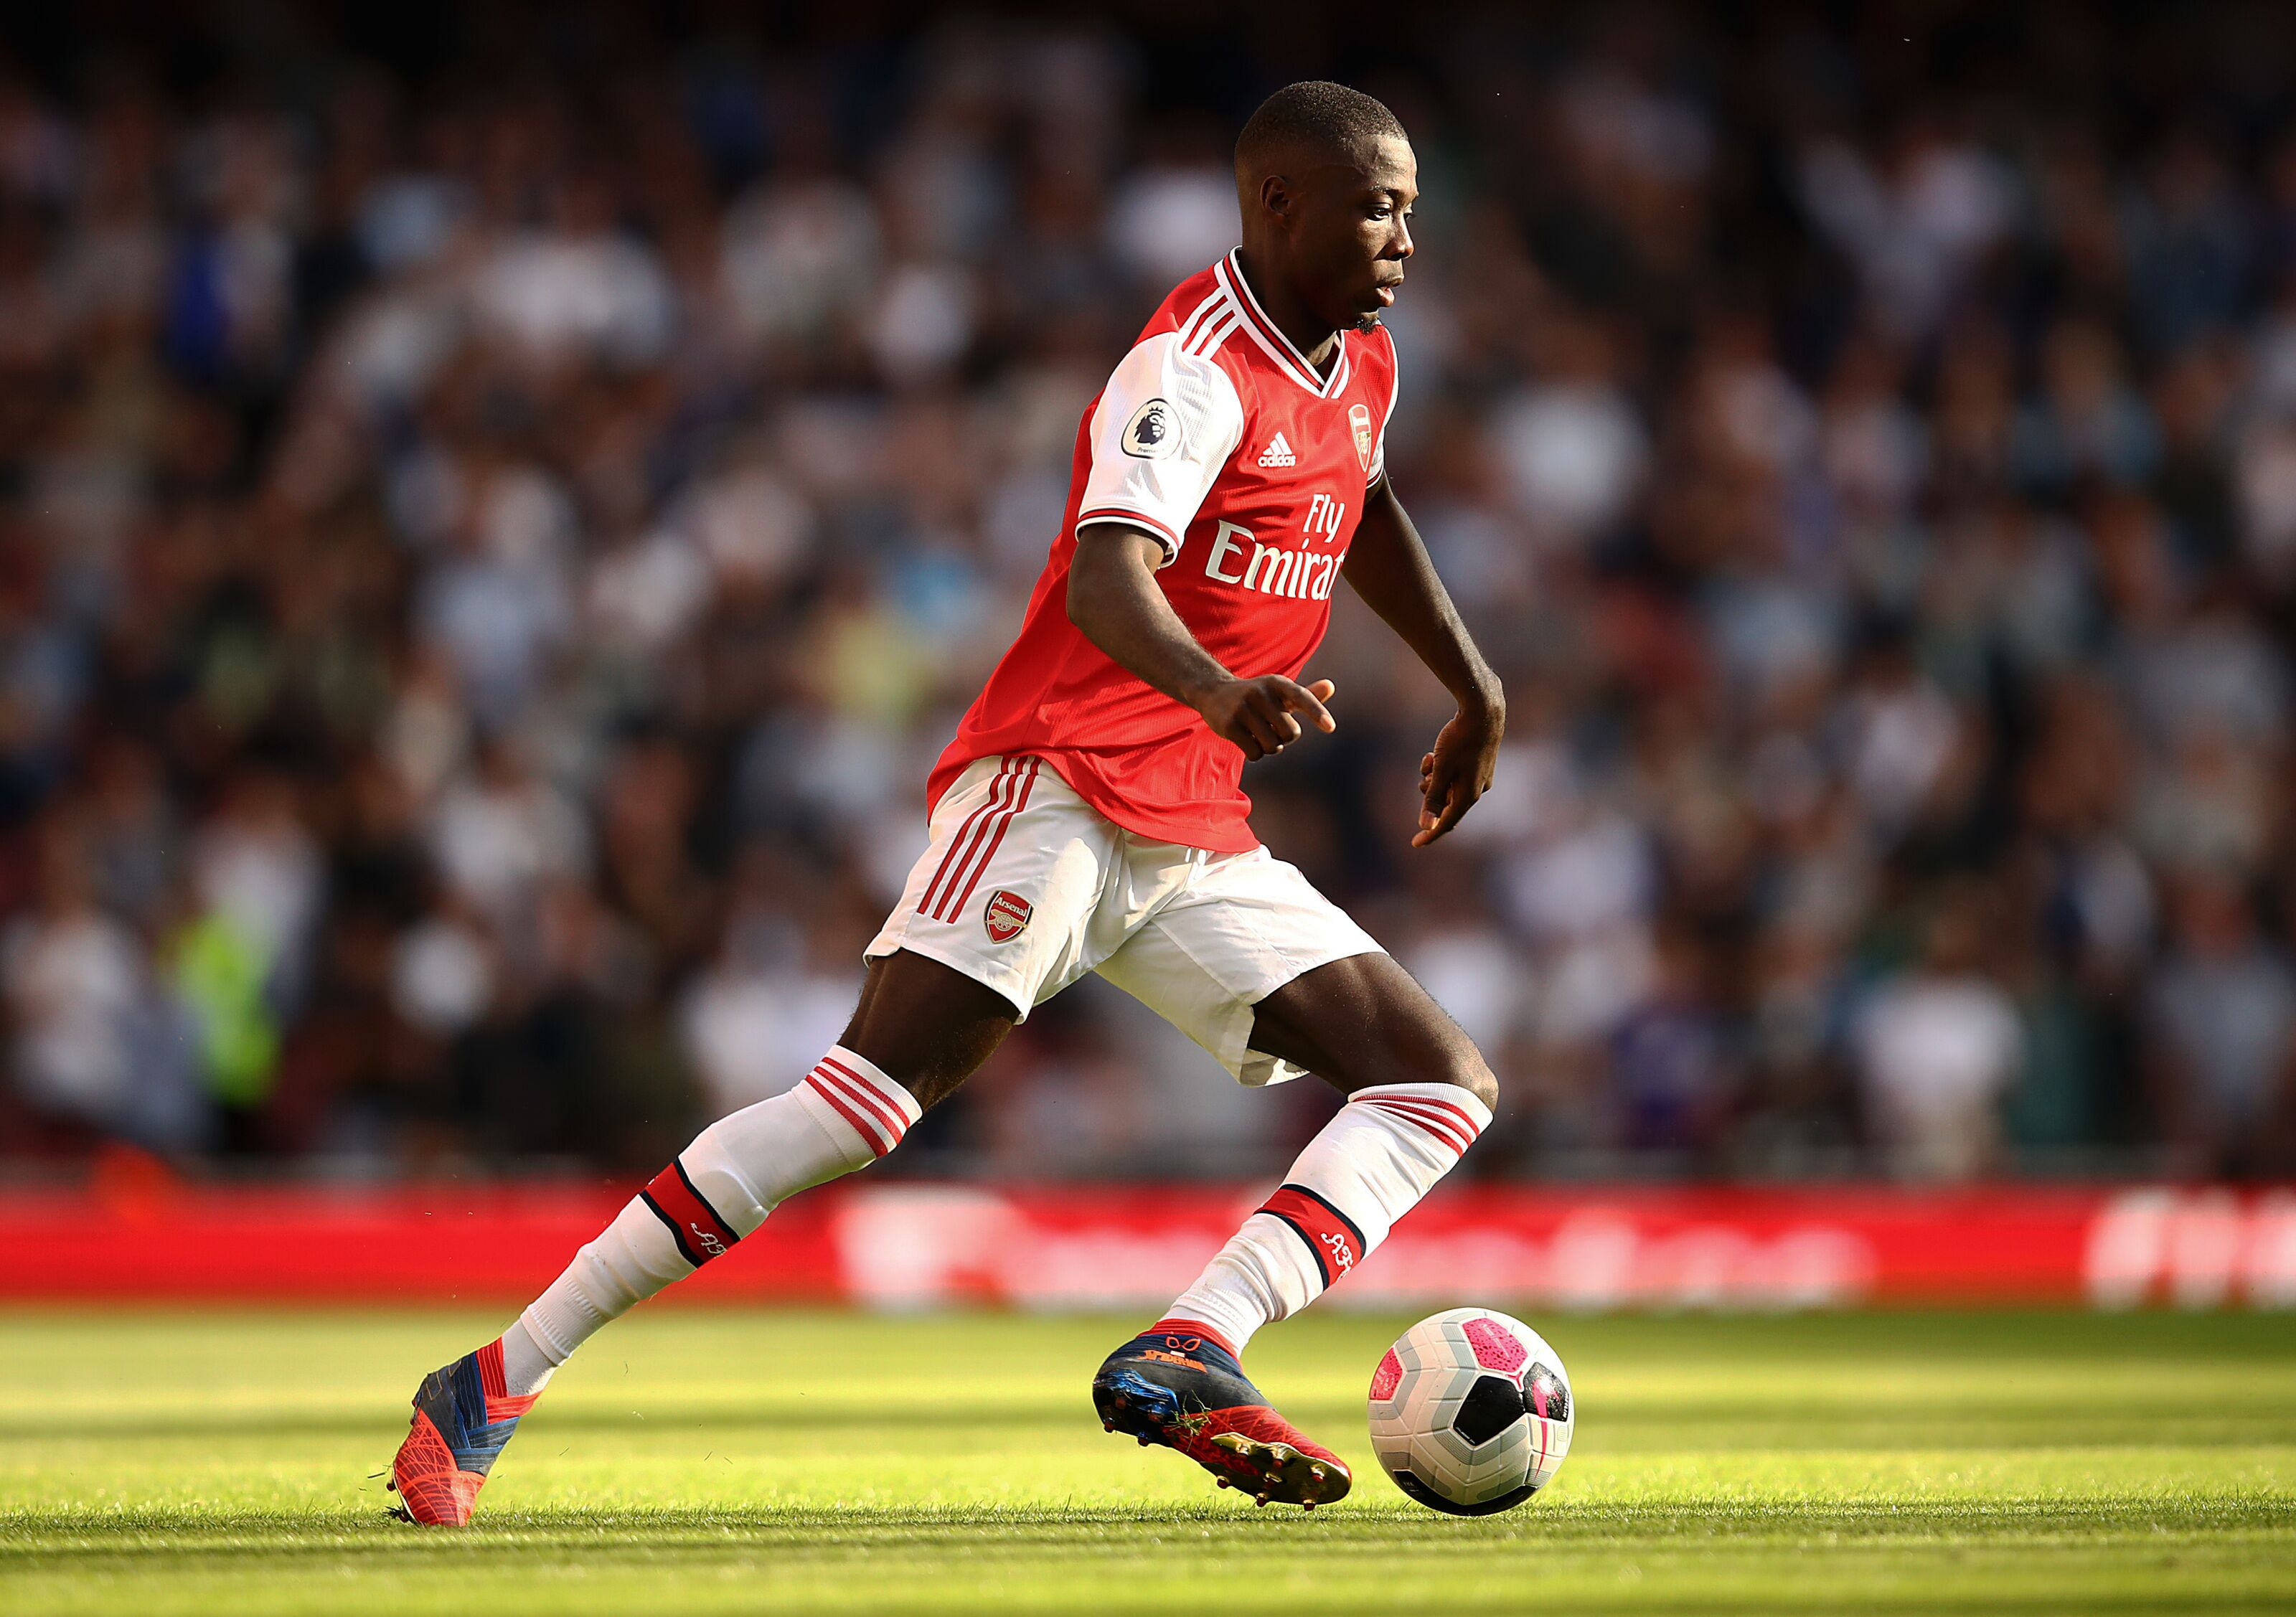 Arsenal: Does anyone still think Nicolas Pepe is a flop?